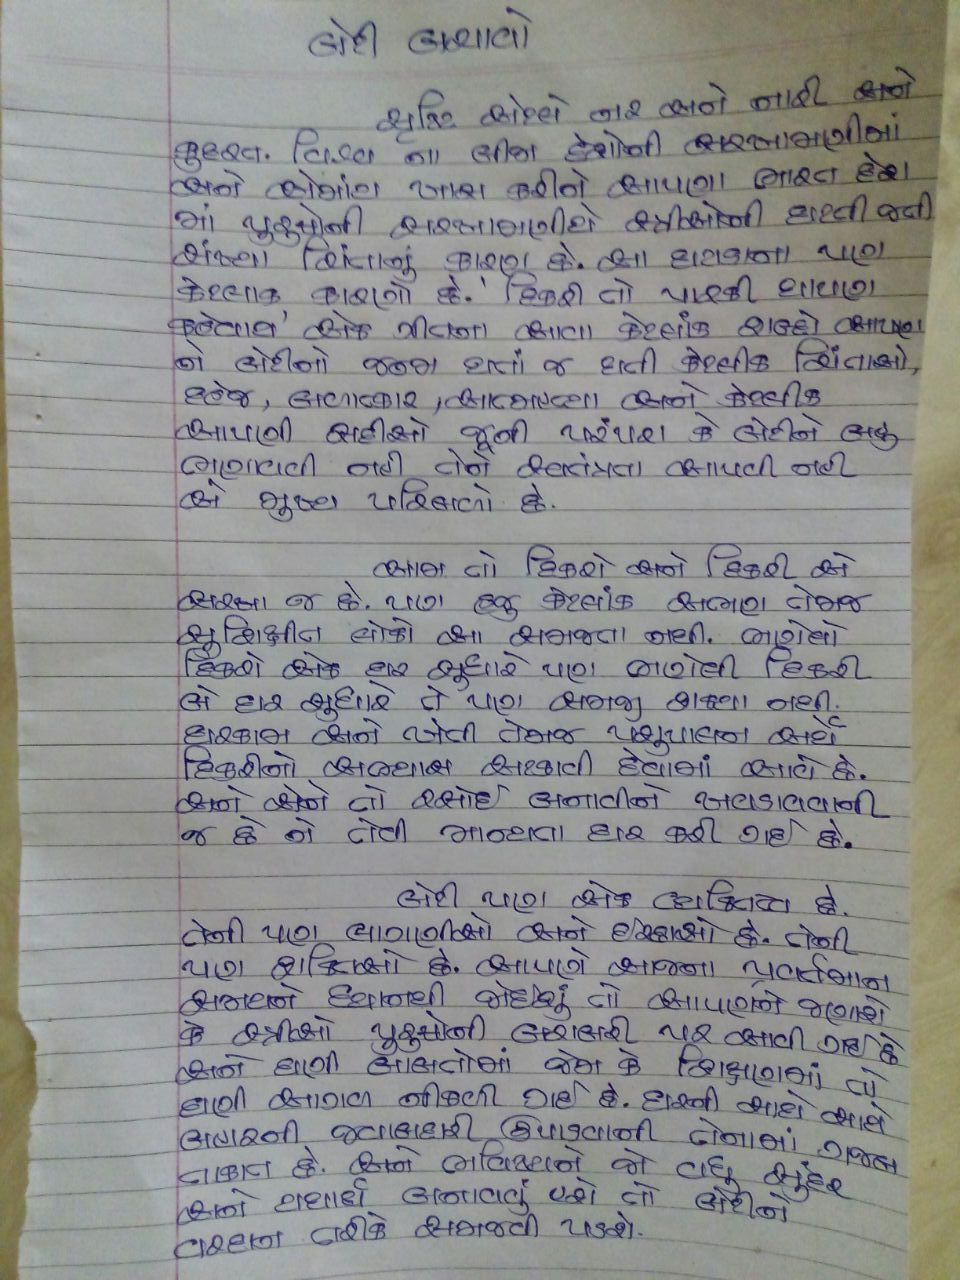 free essays in hindi Free essays on mera janamdin essays in hindi get help with your writing 1 through 30.